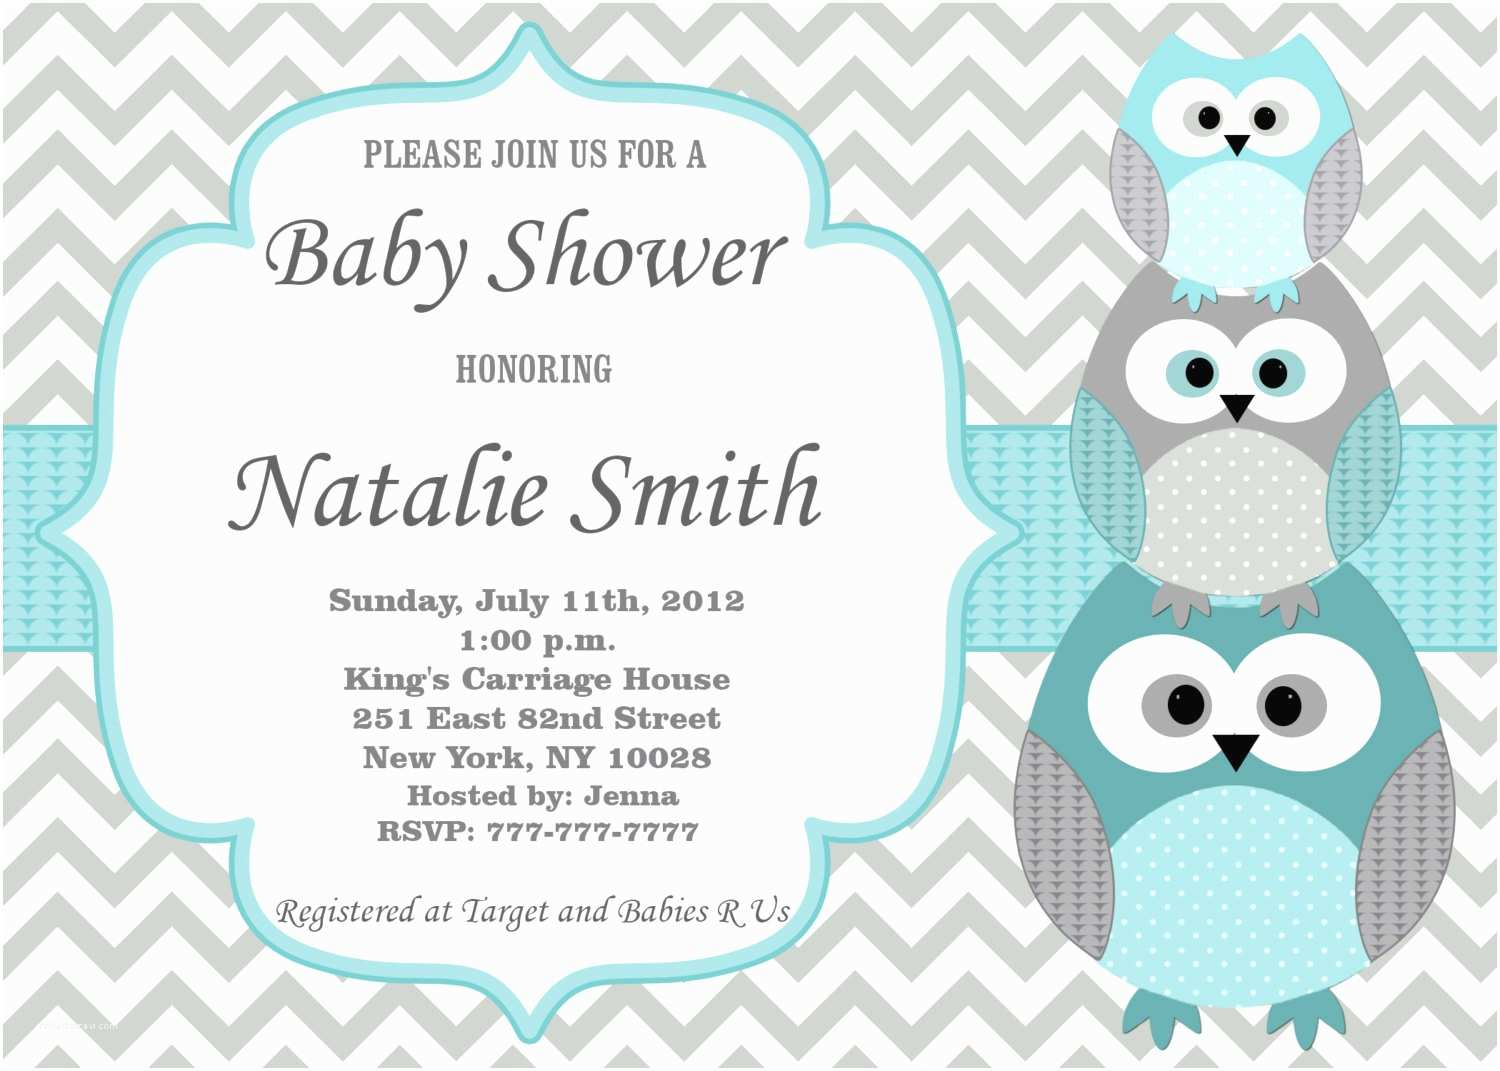 Owl Invitations for Baby Shower Baby Shower Invitations Owl theme